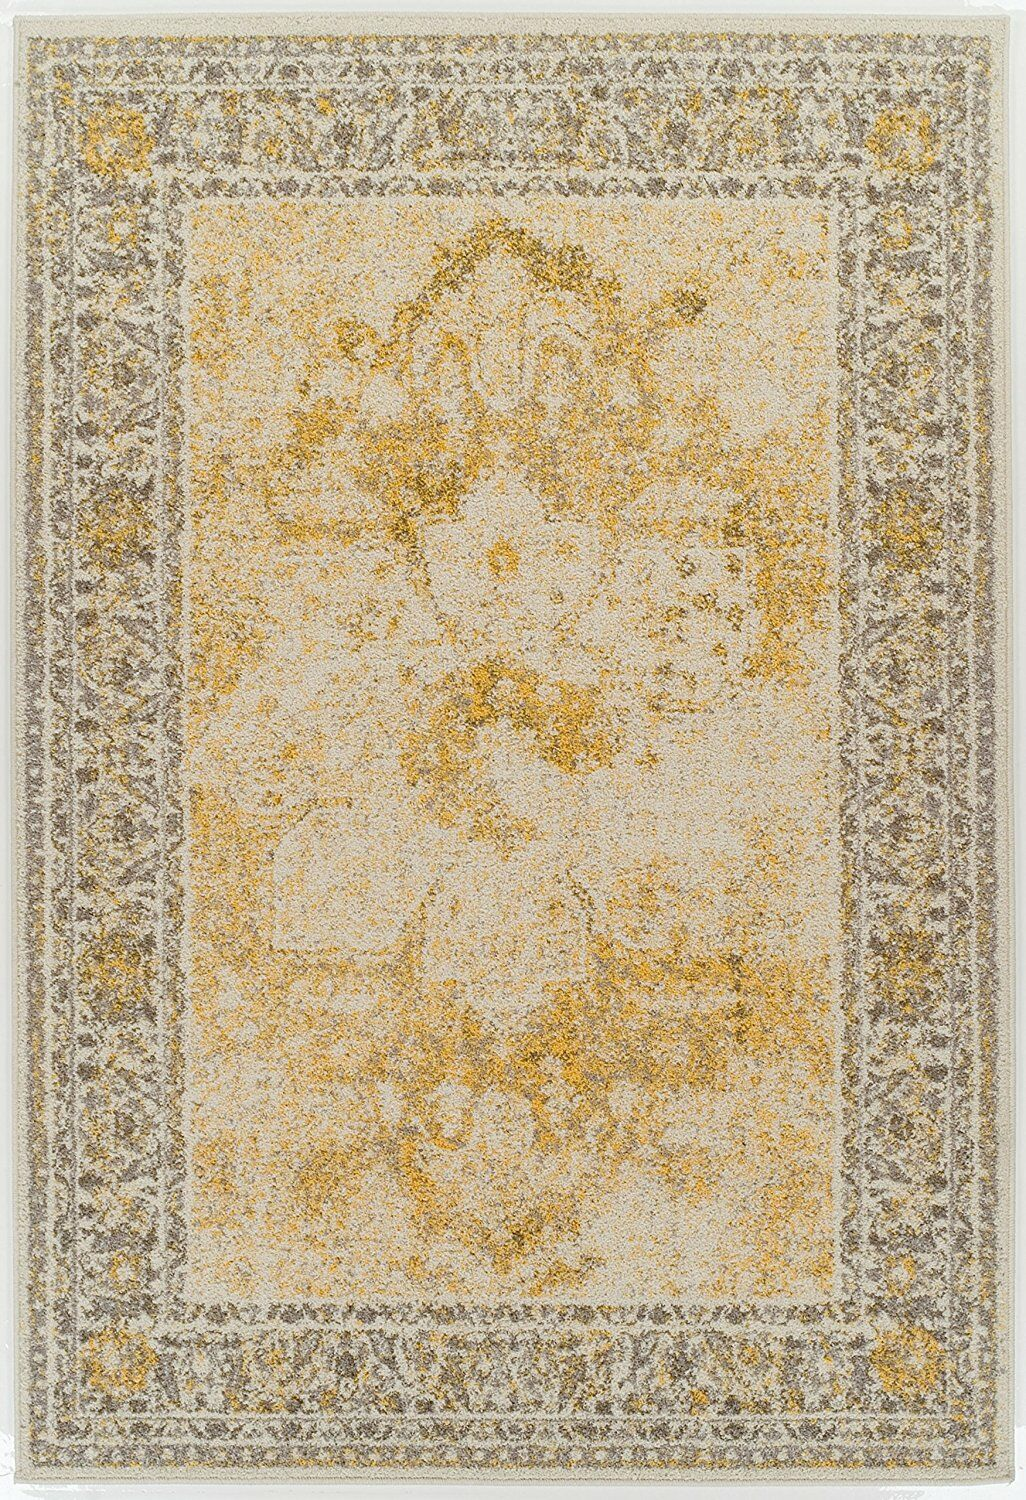 Arvidson Wool Yellow Indoor/Outdoor Area Rug Rug Size: Rectangle 8' x 11'